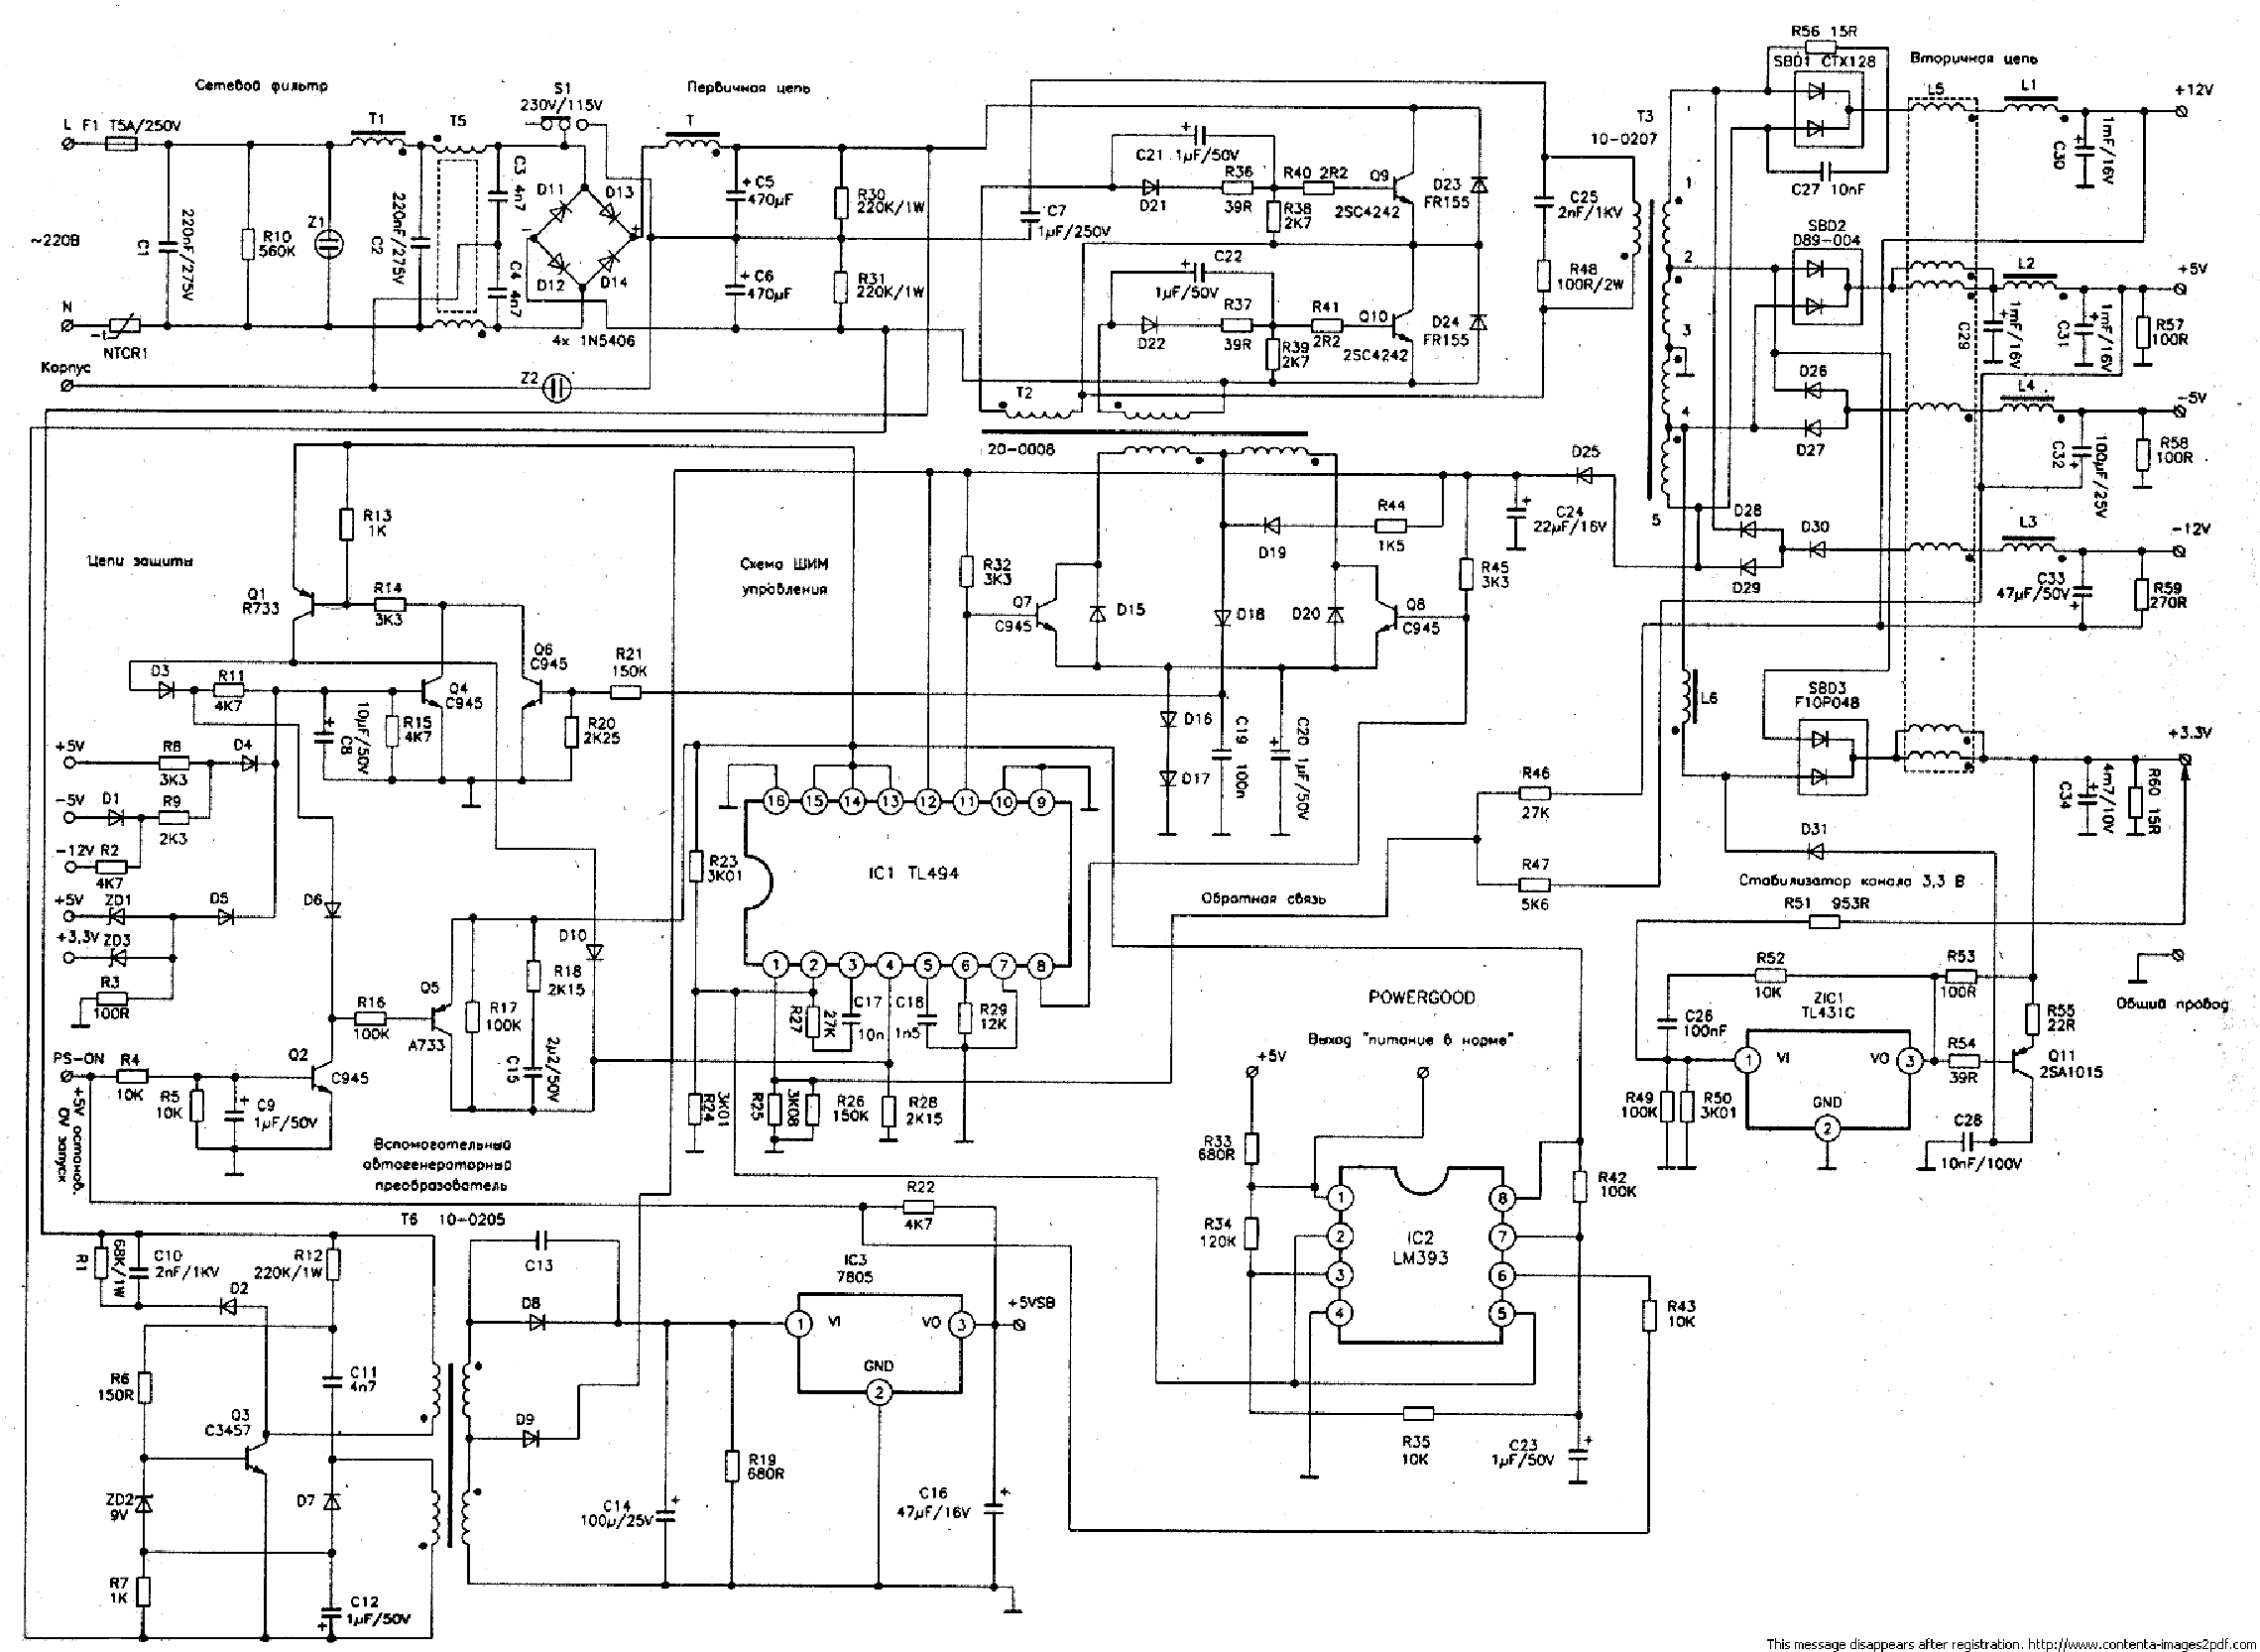 ATX Power Supply Schematic http://elektrotanya.com/atx_200_pc_power_supply_sch.pdf/download.html